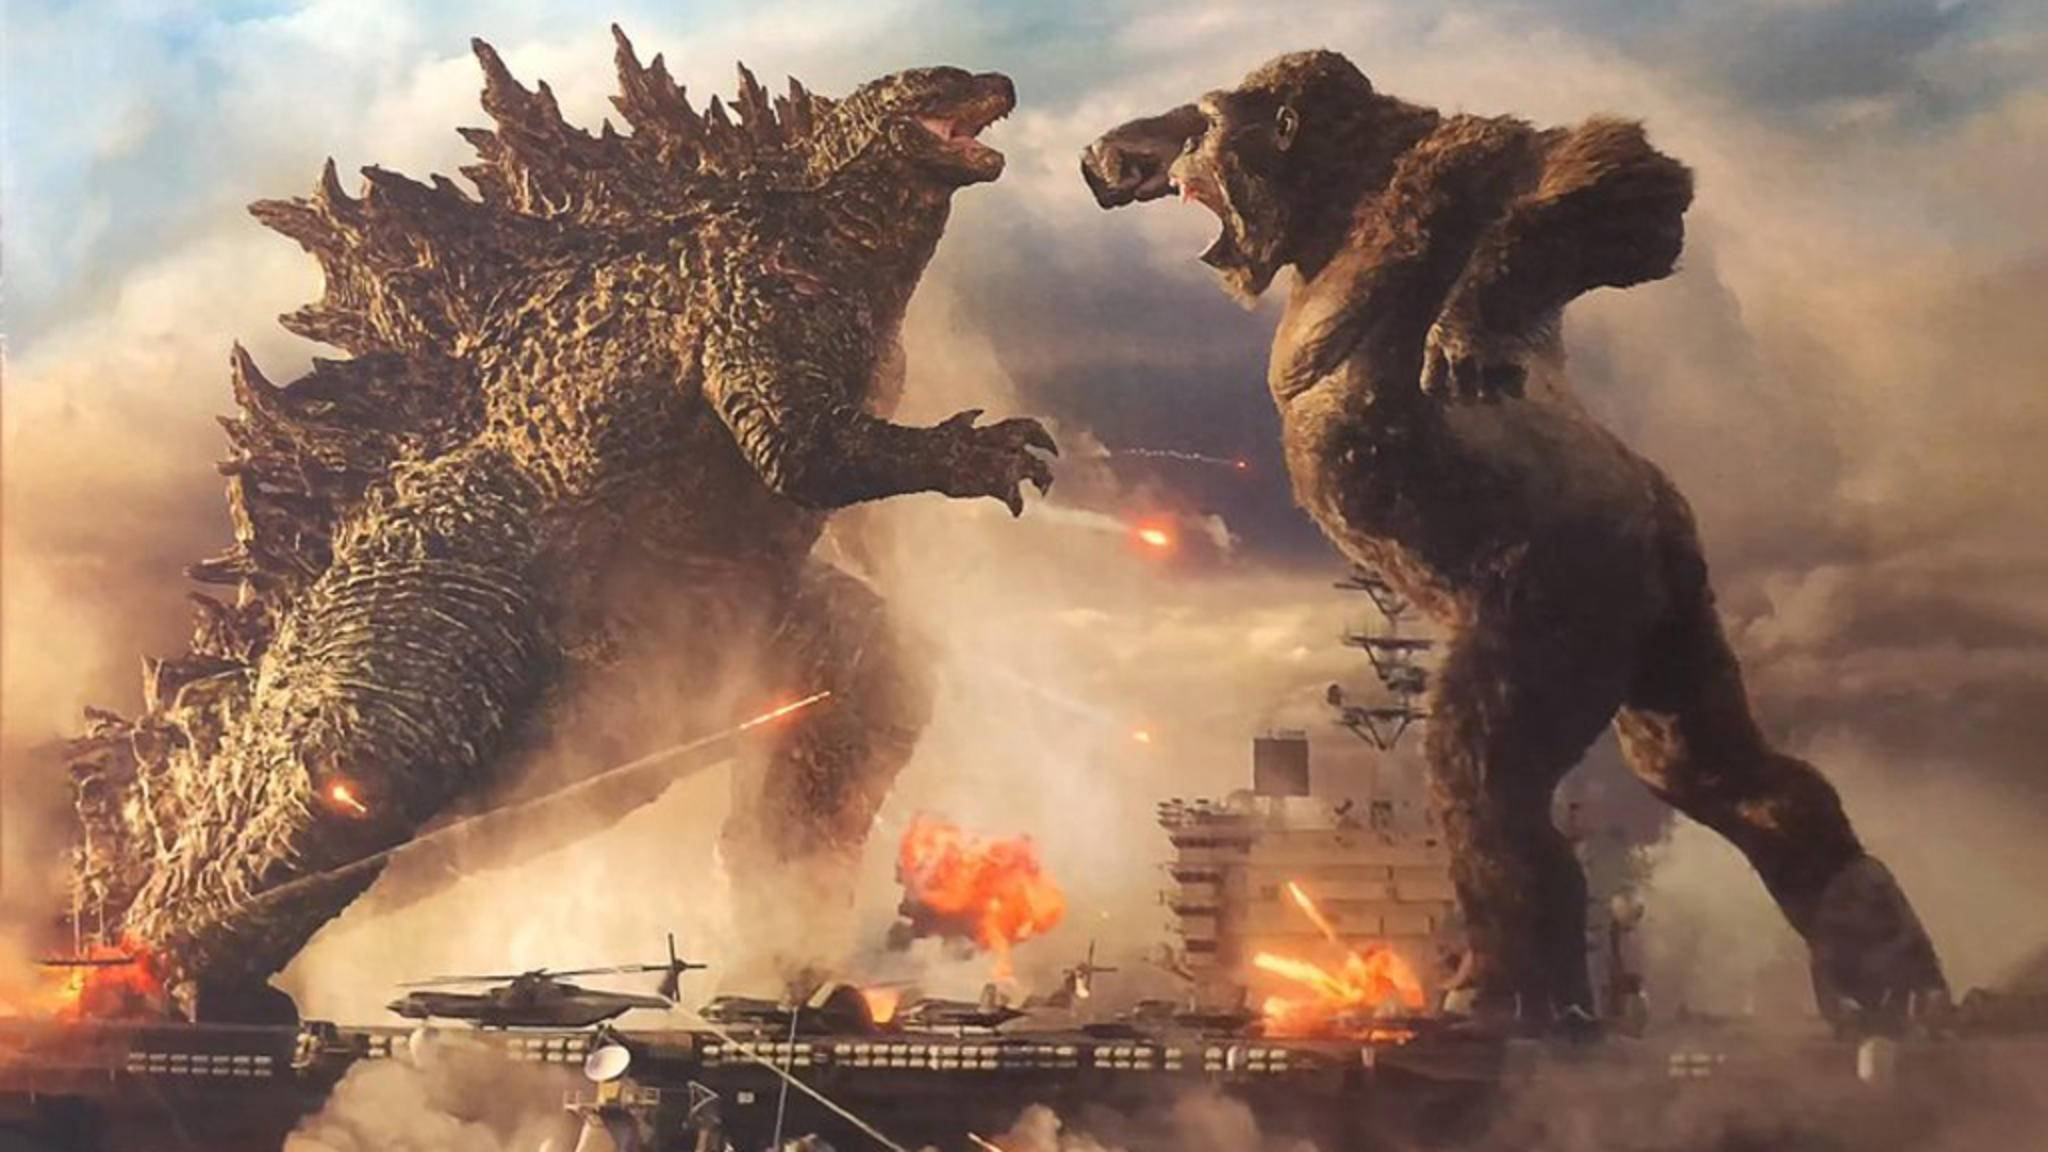 Godzilla vs. Kong Sneak Peek Art